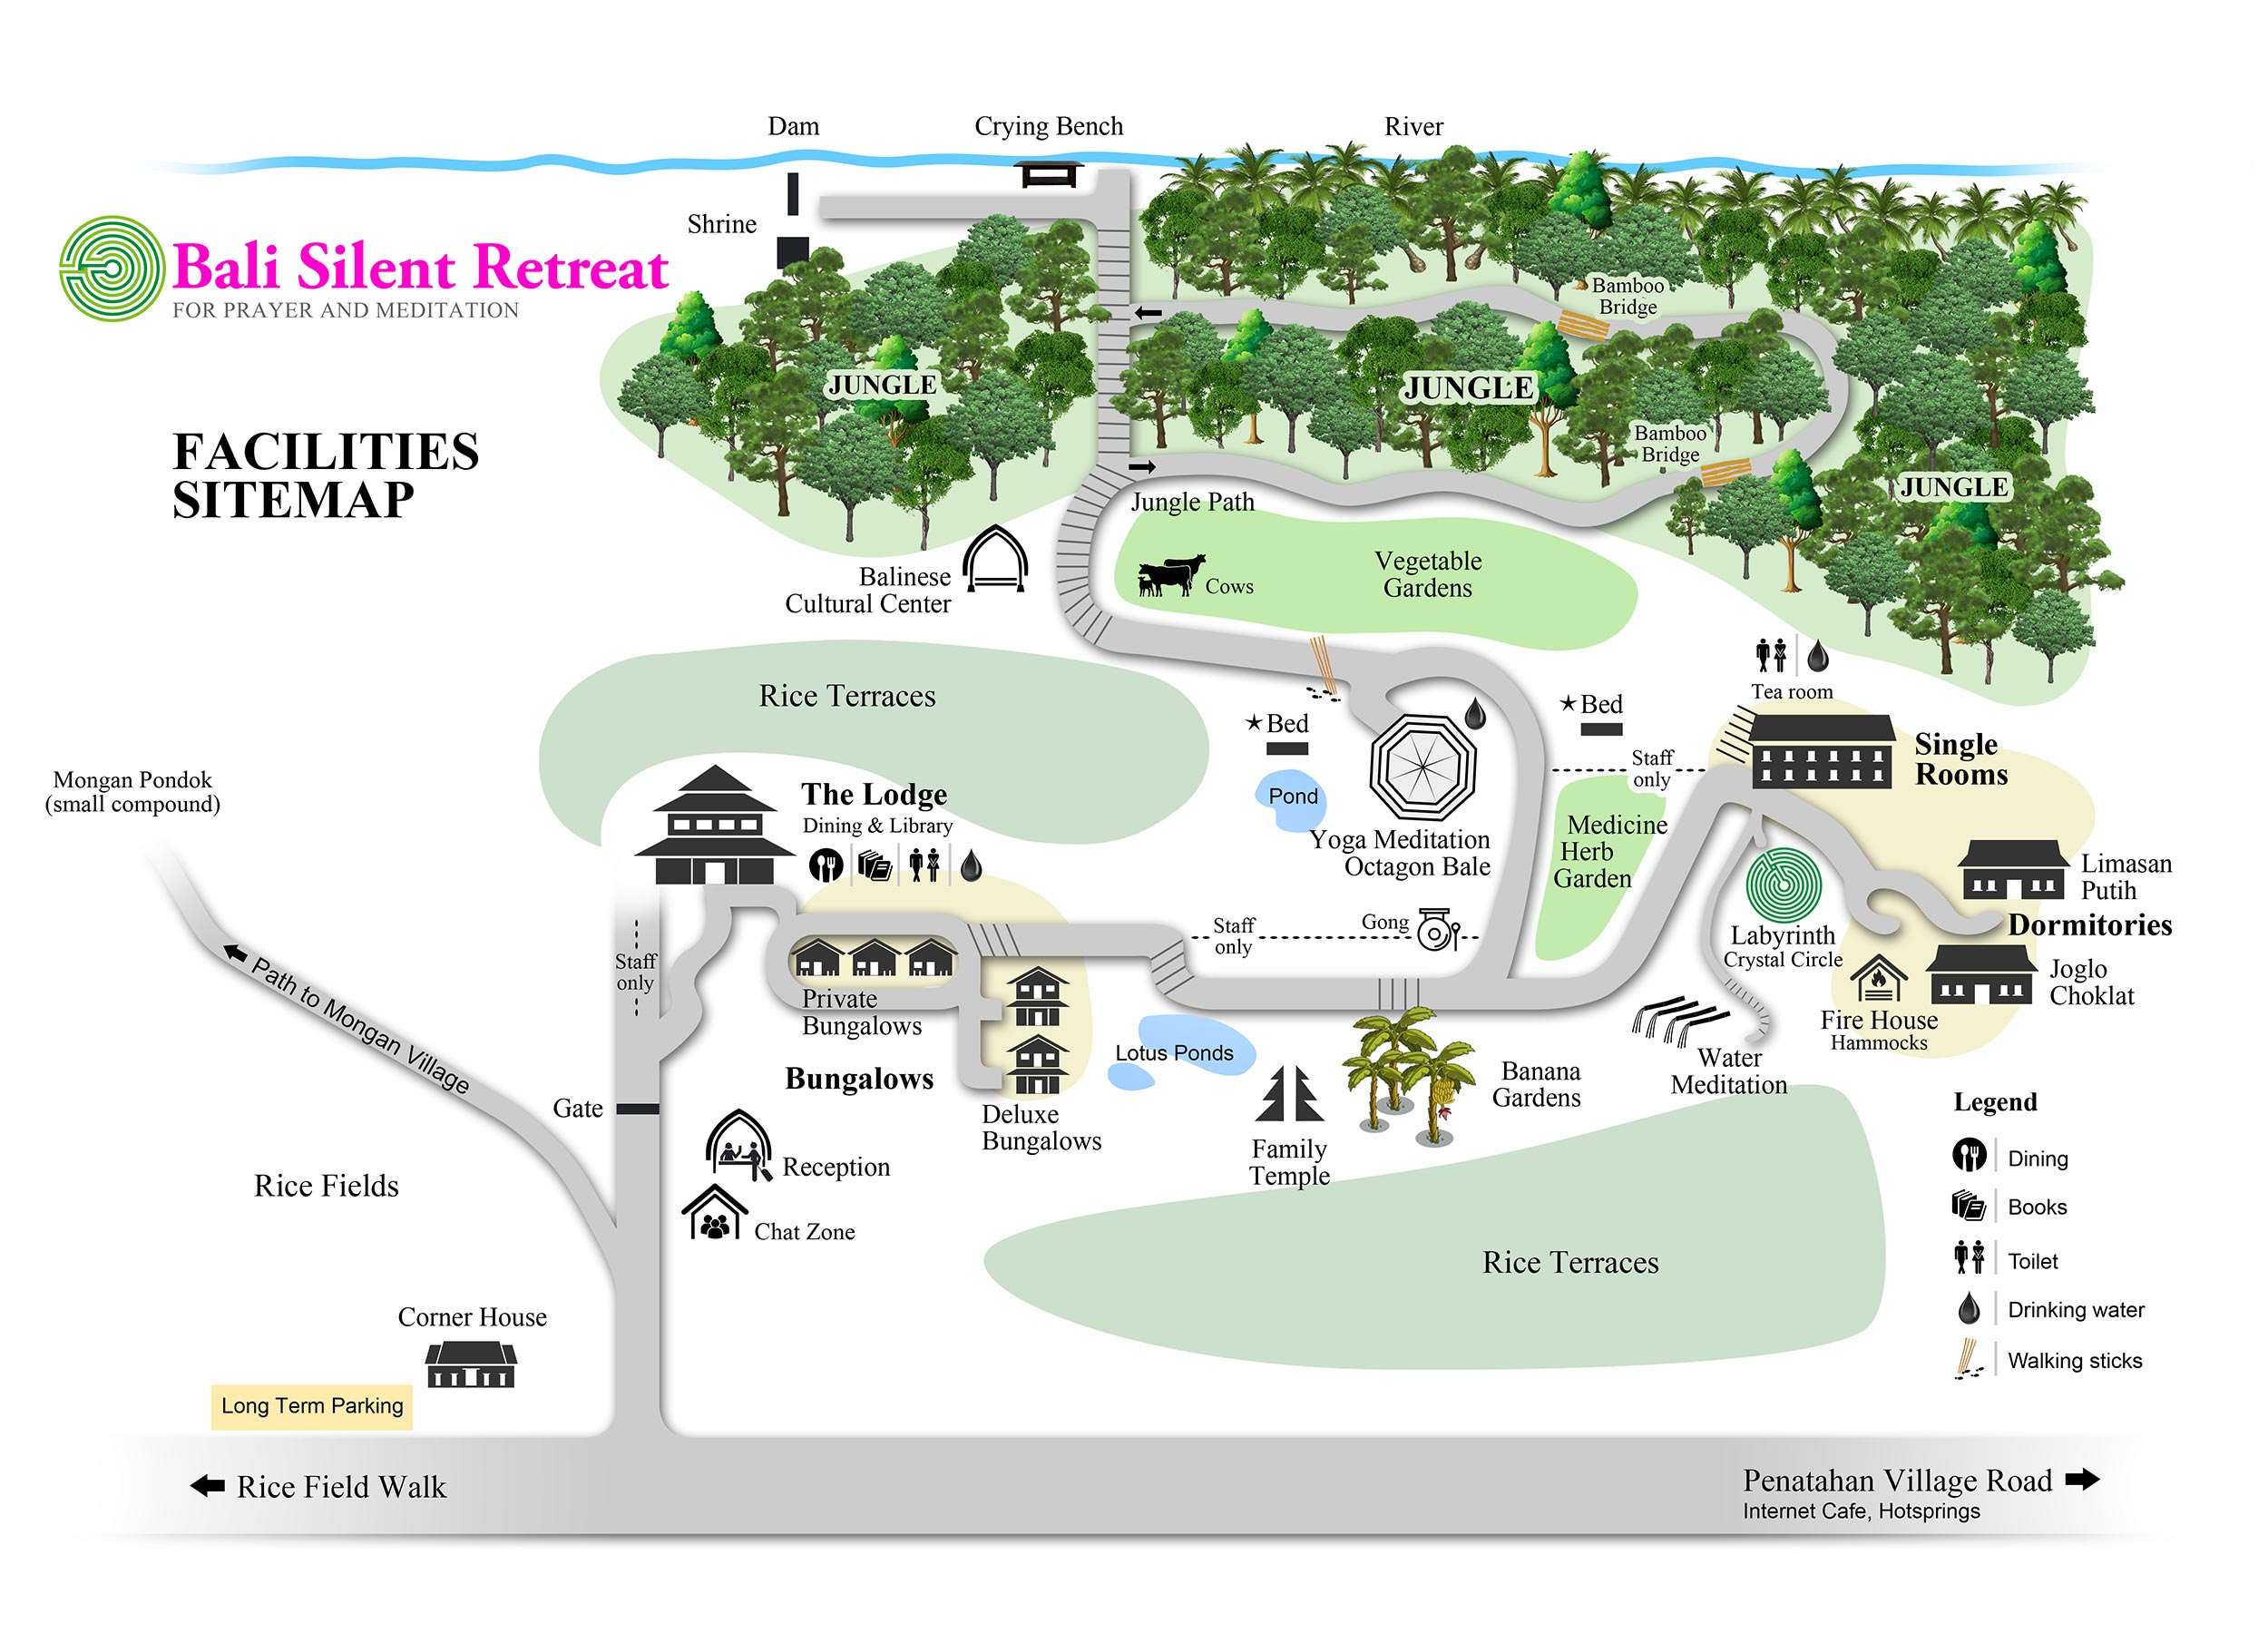 Bali Silent Retreat Facilities sitemap